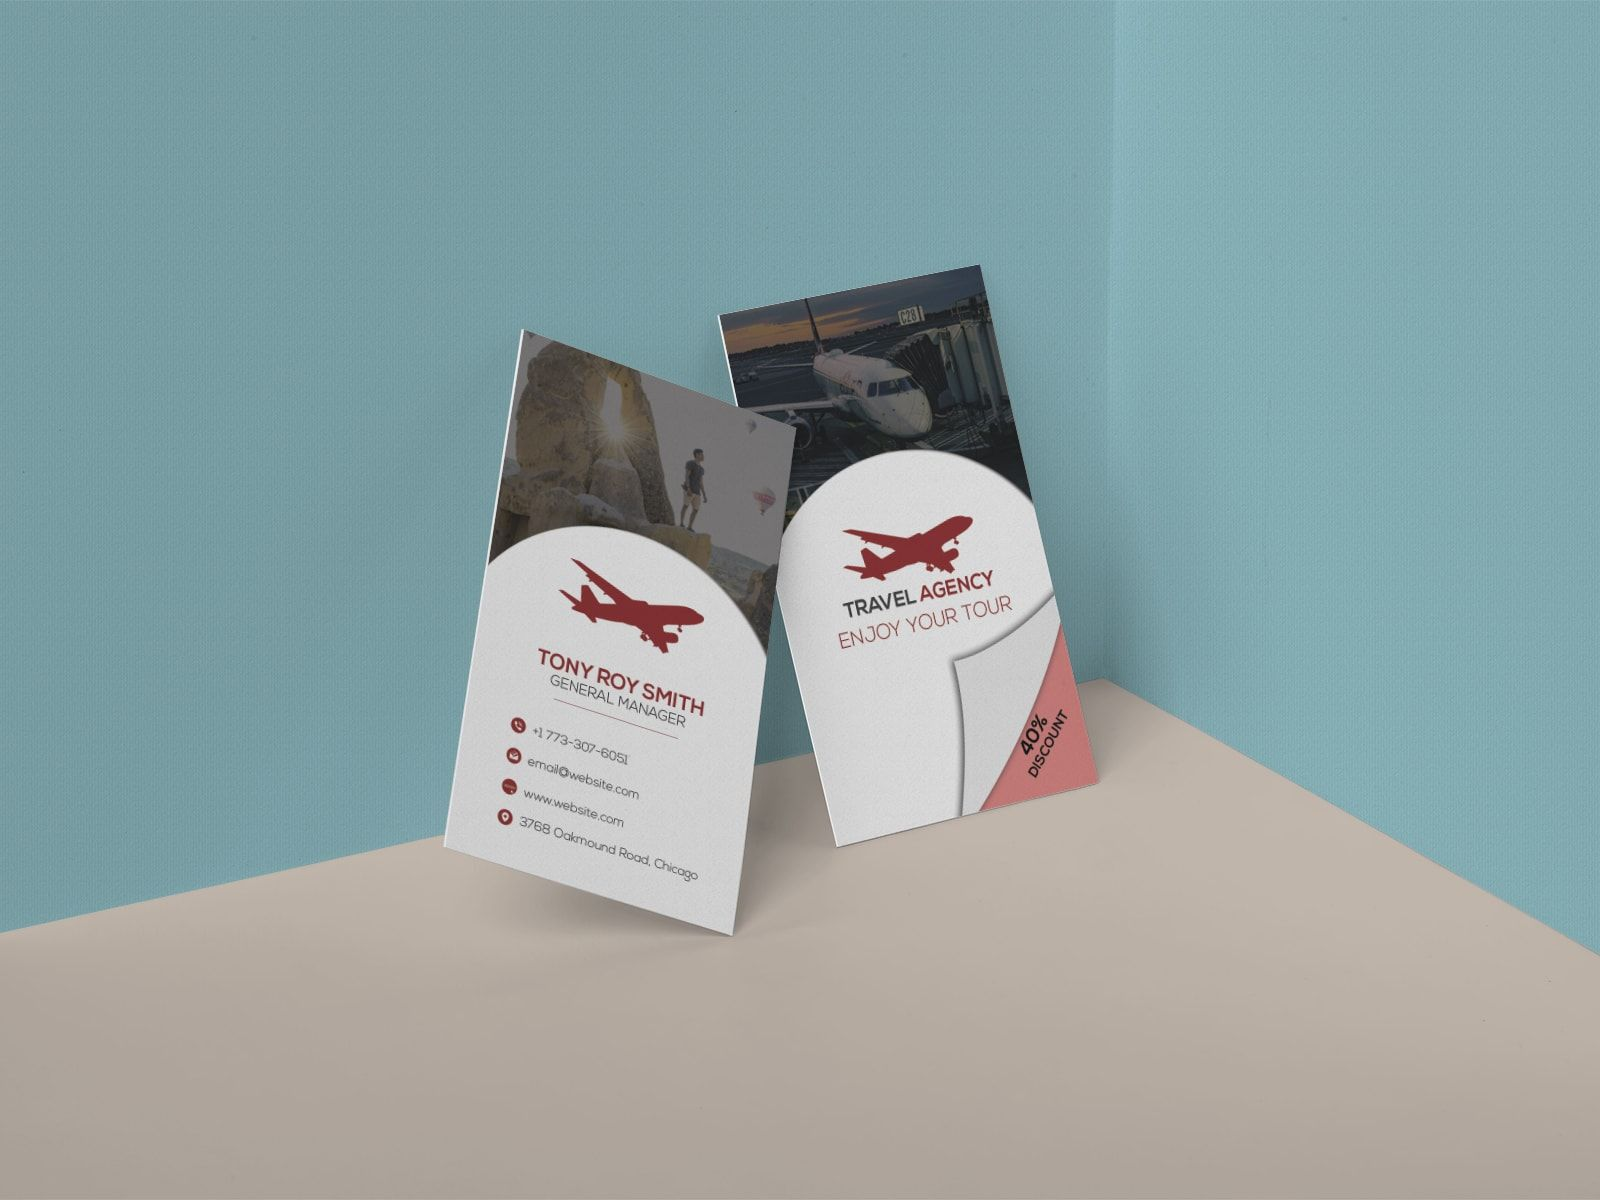 travel agency discount business card with images